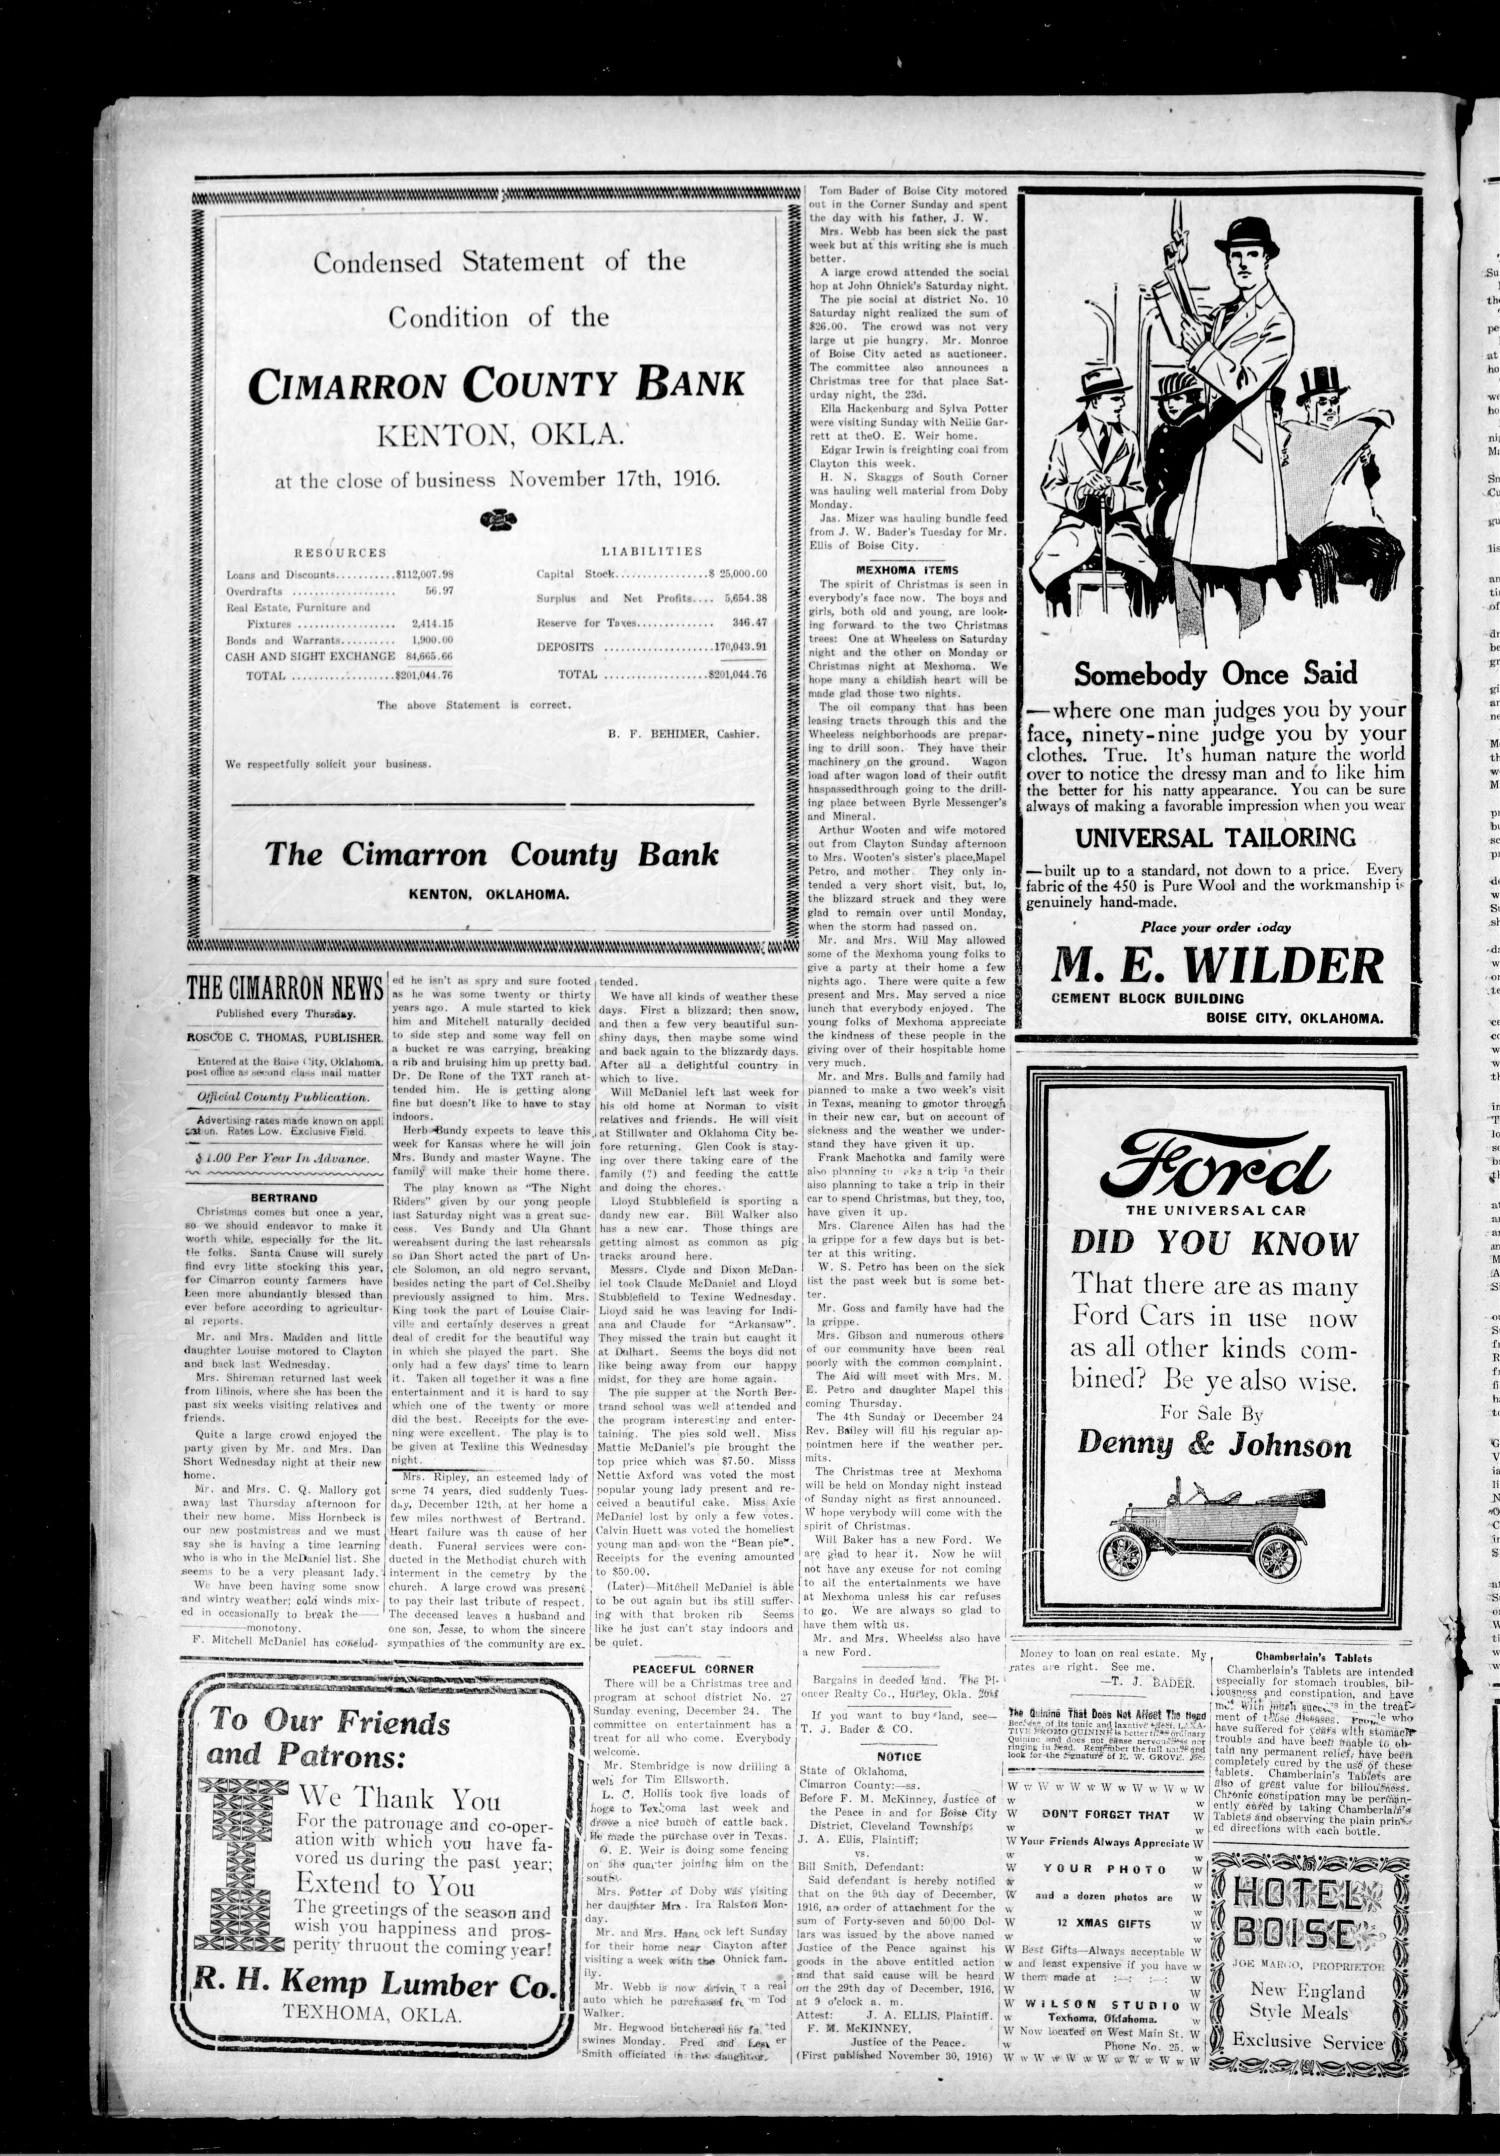 The Cimarron News. (Boise City, Okla.), Vol. 19, No. 21, Ed. 1 Thursday, December 21, 1916                                                                                                      [Sequence #]: 2 of 4